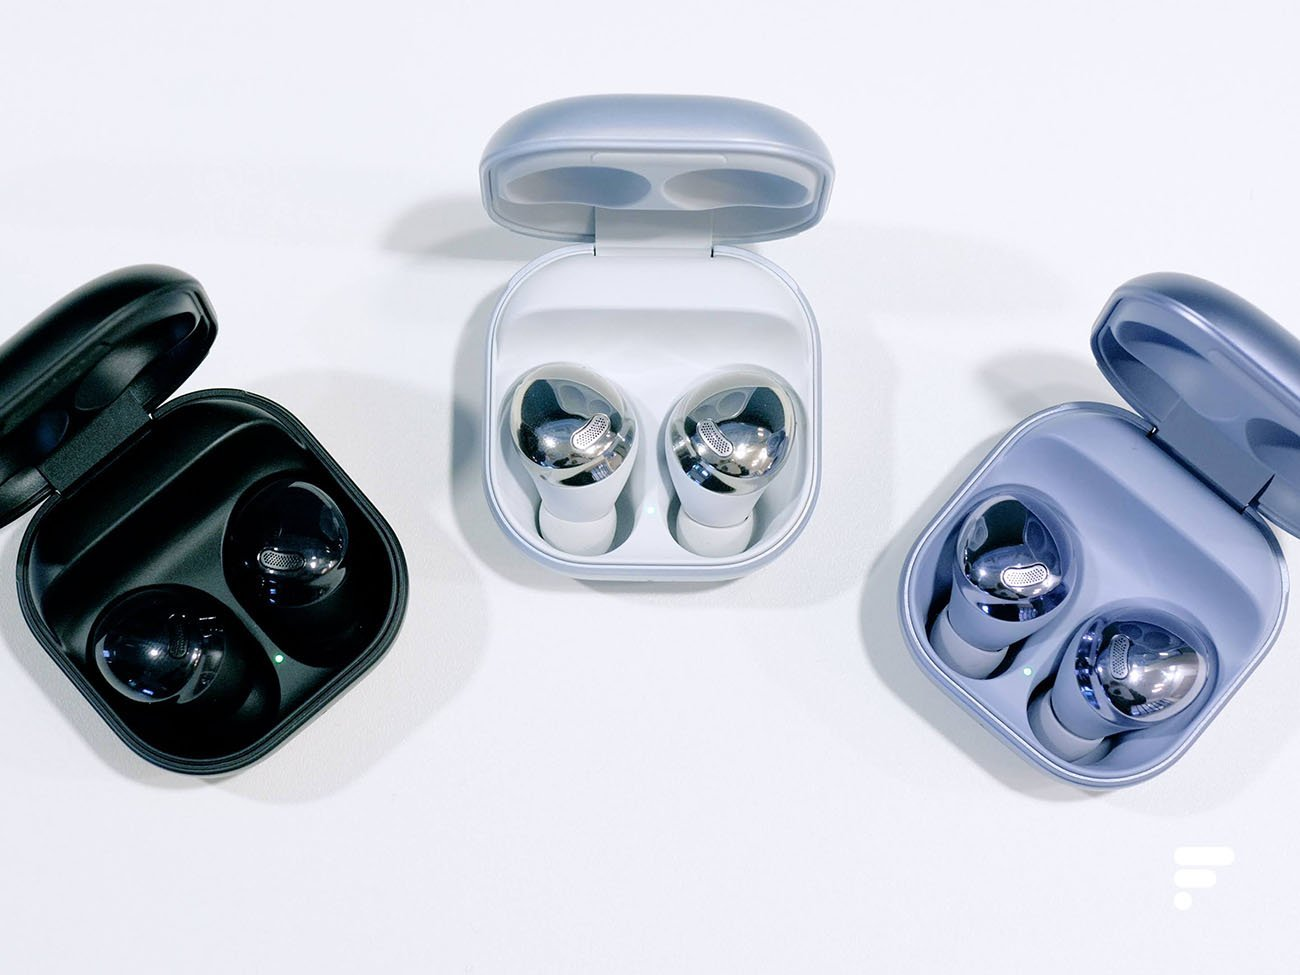 Samsung Galaxy Buds Pro officialisés : le constructeur met le paquet sur la réduction de bruit